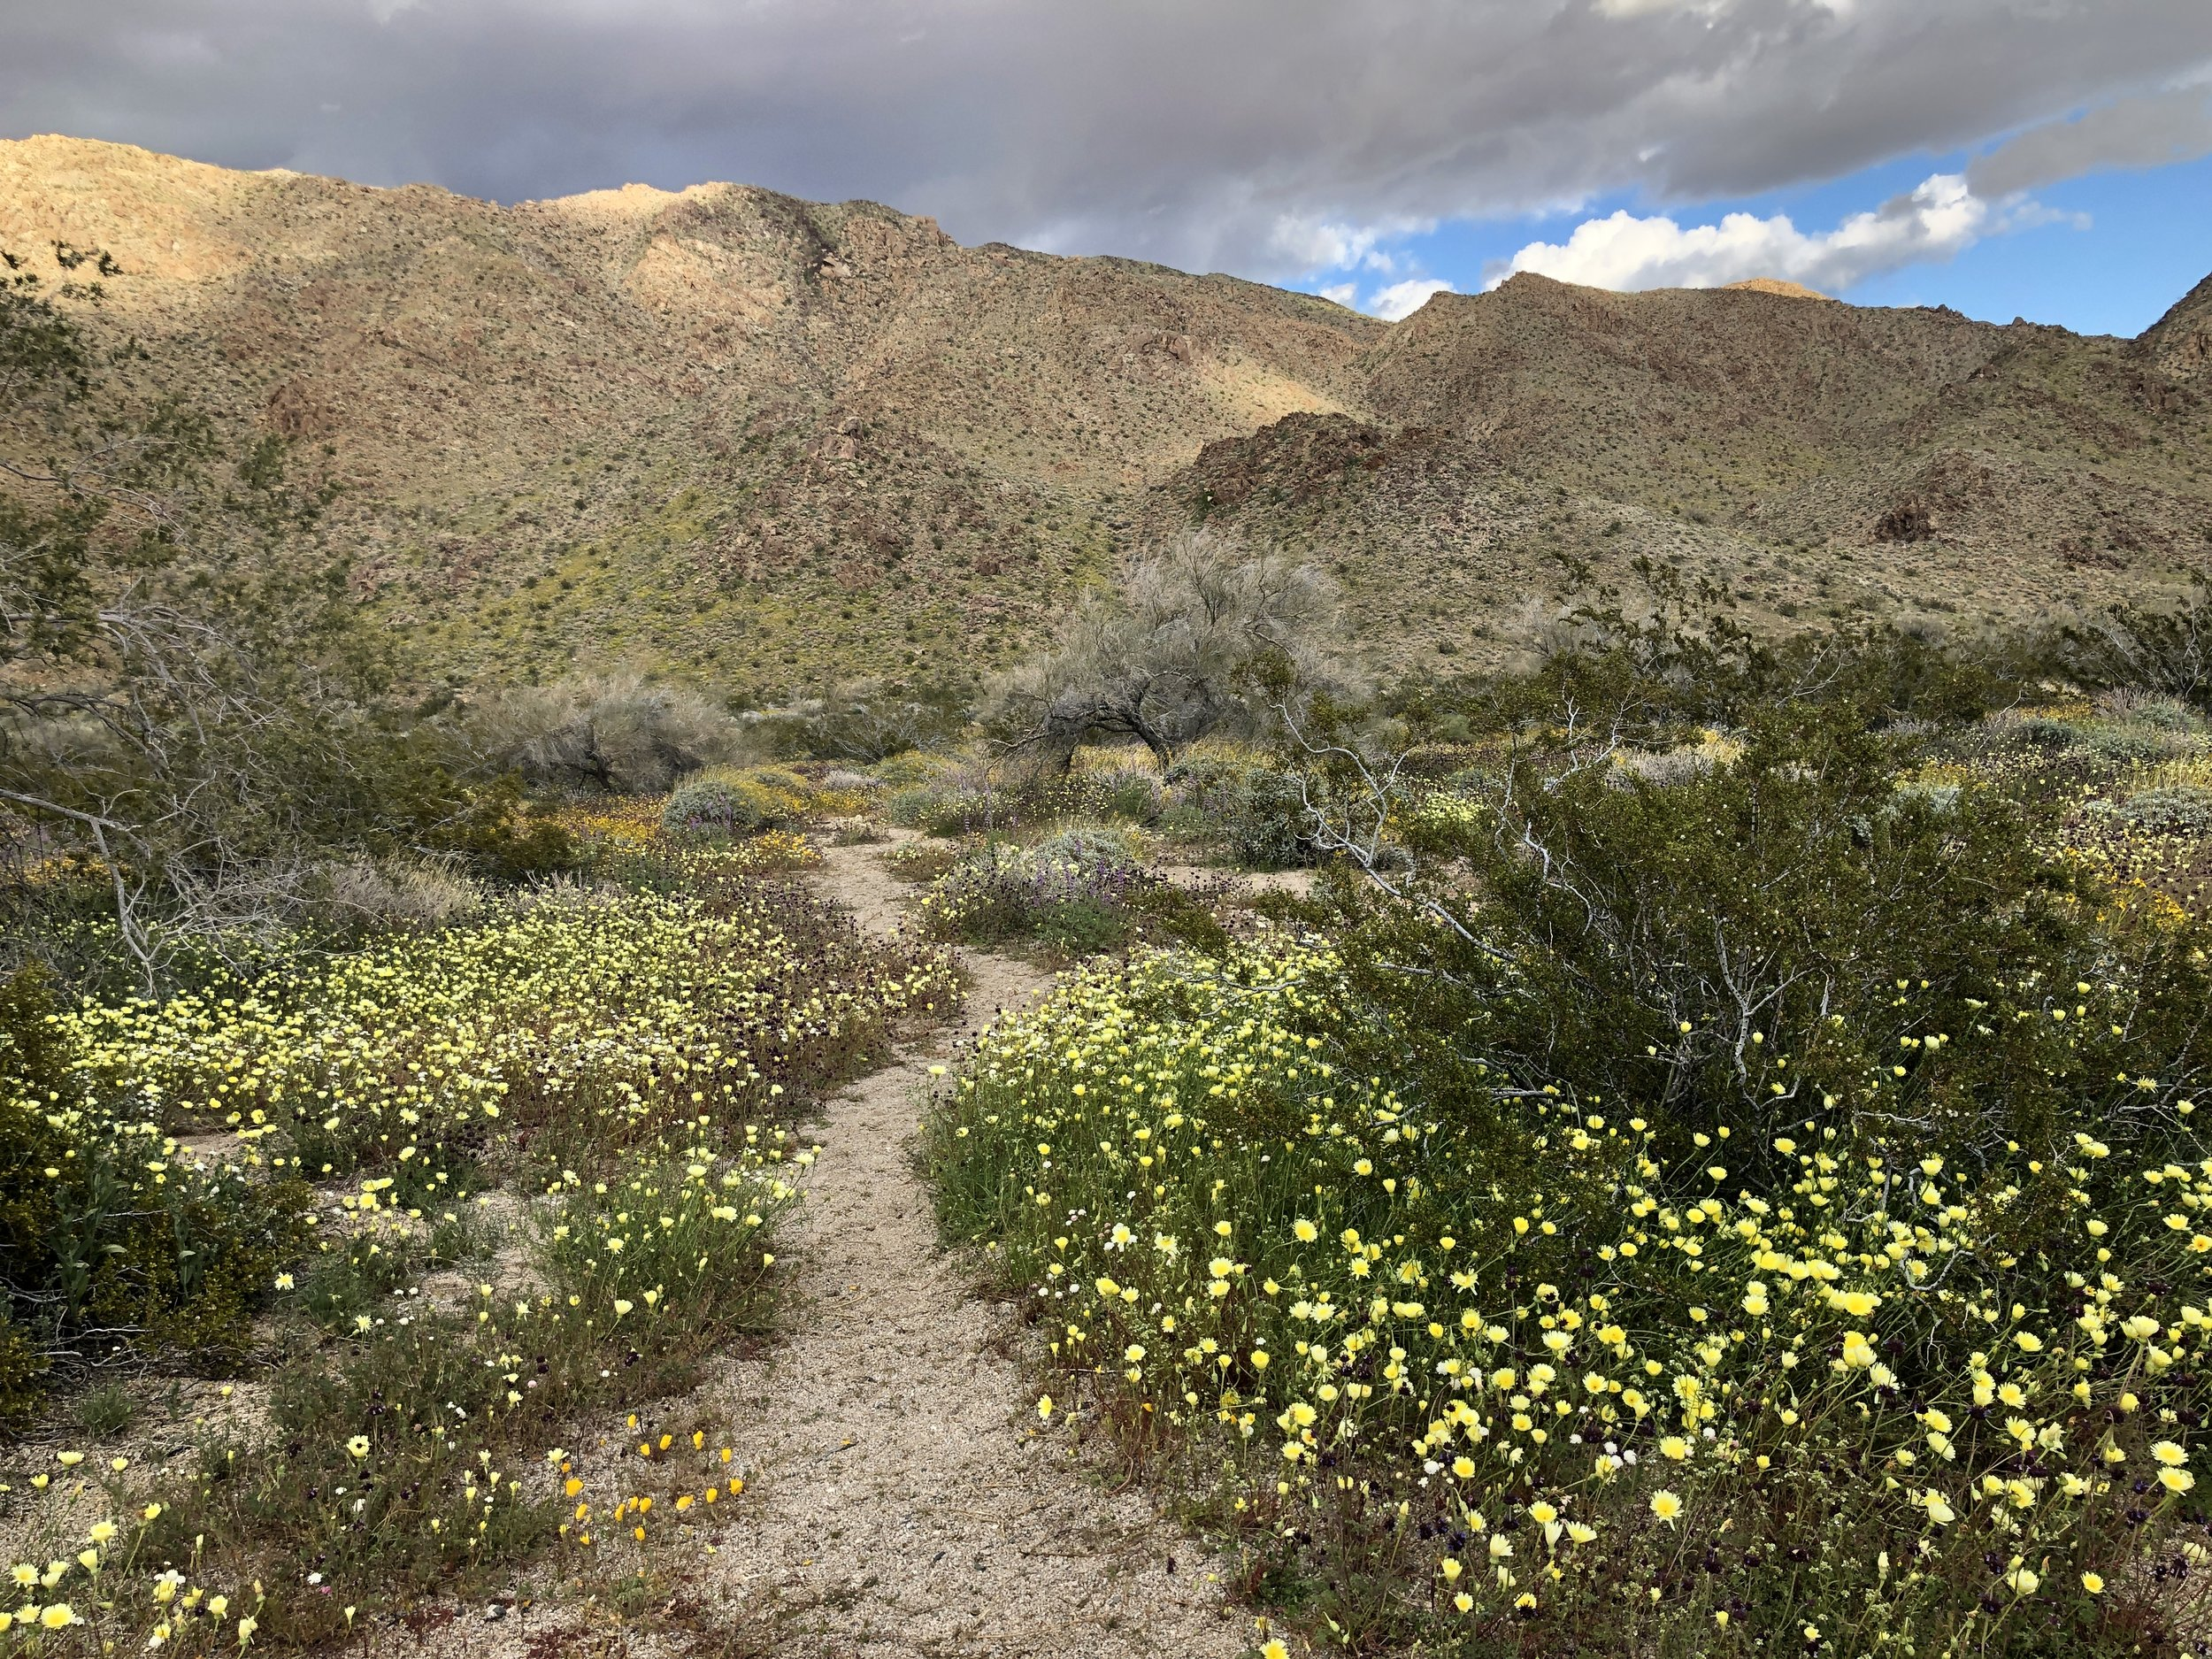 """Super Bloom"" of wildflowers in Joshua Tree National Park. Record rainfall has transformed many parts of the desert into a vast green landscape!"